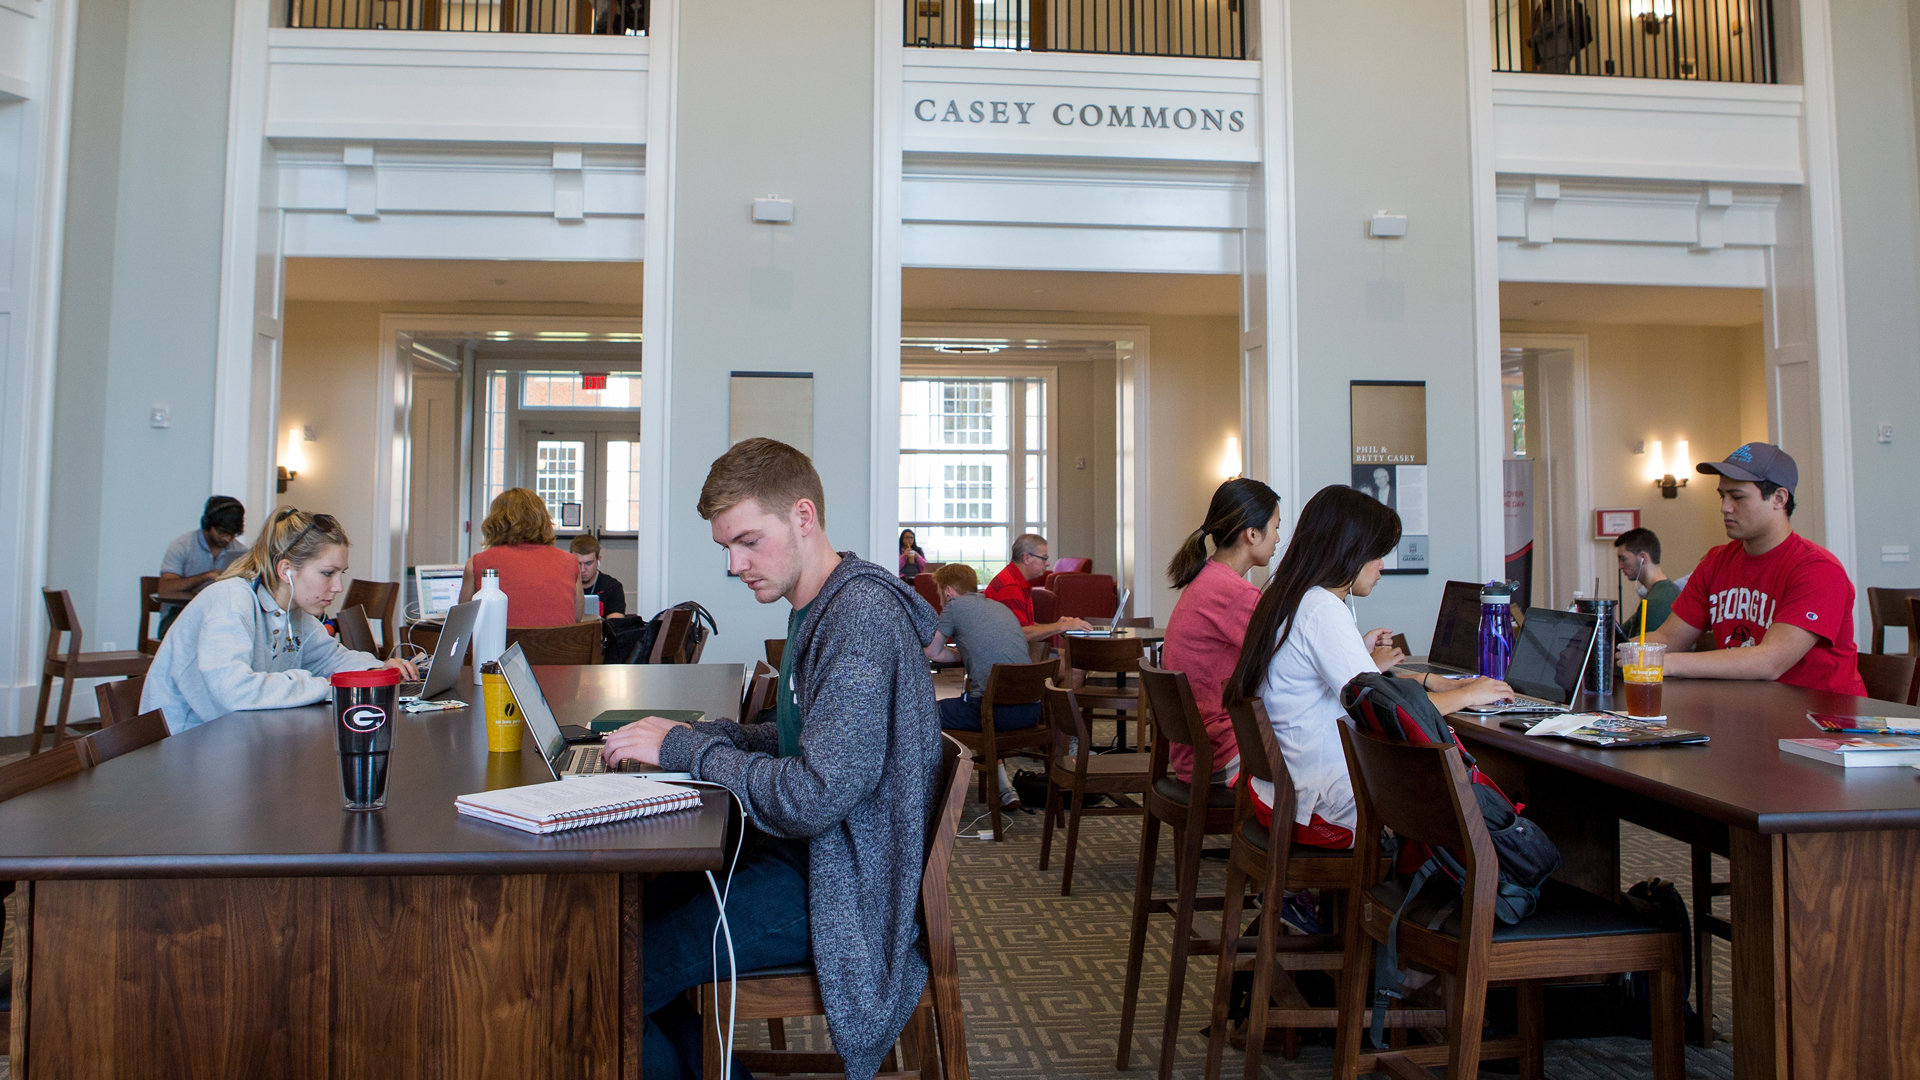 Students study in Casey Commons